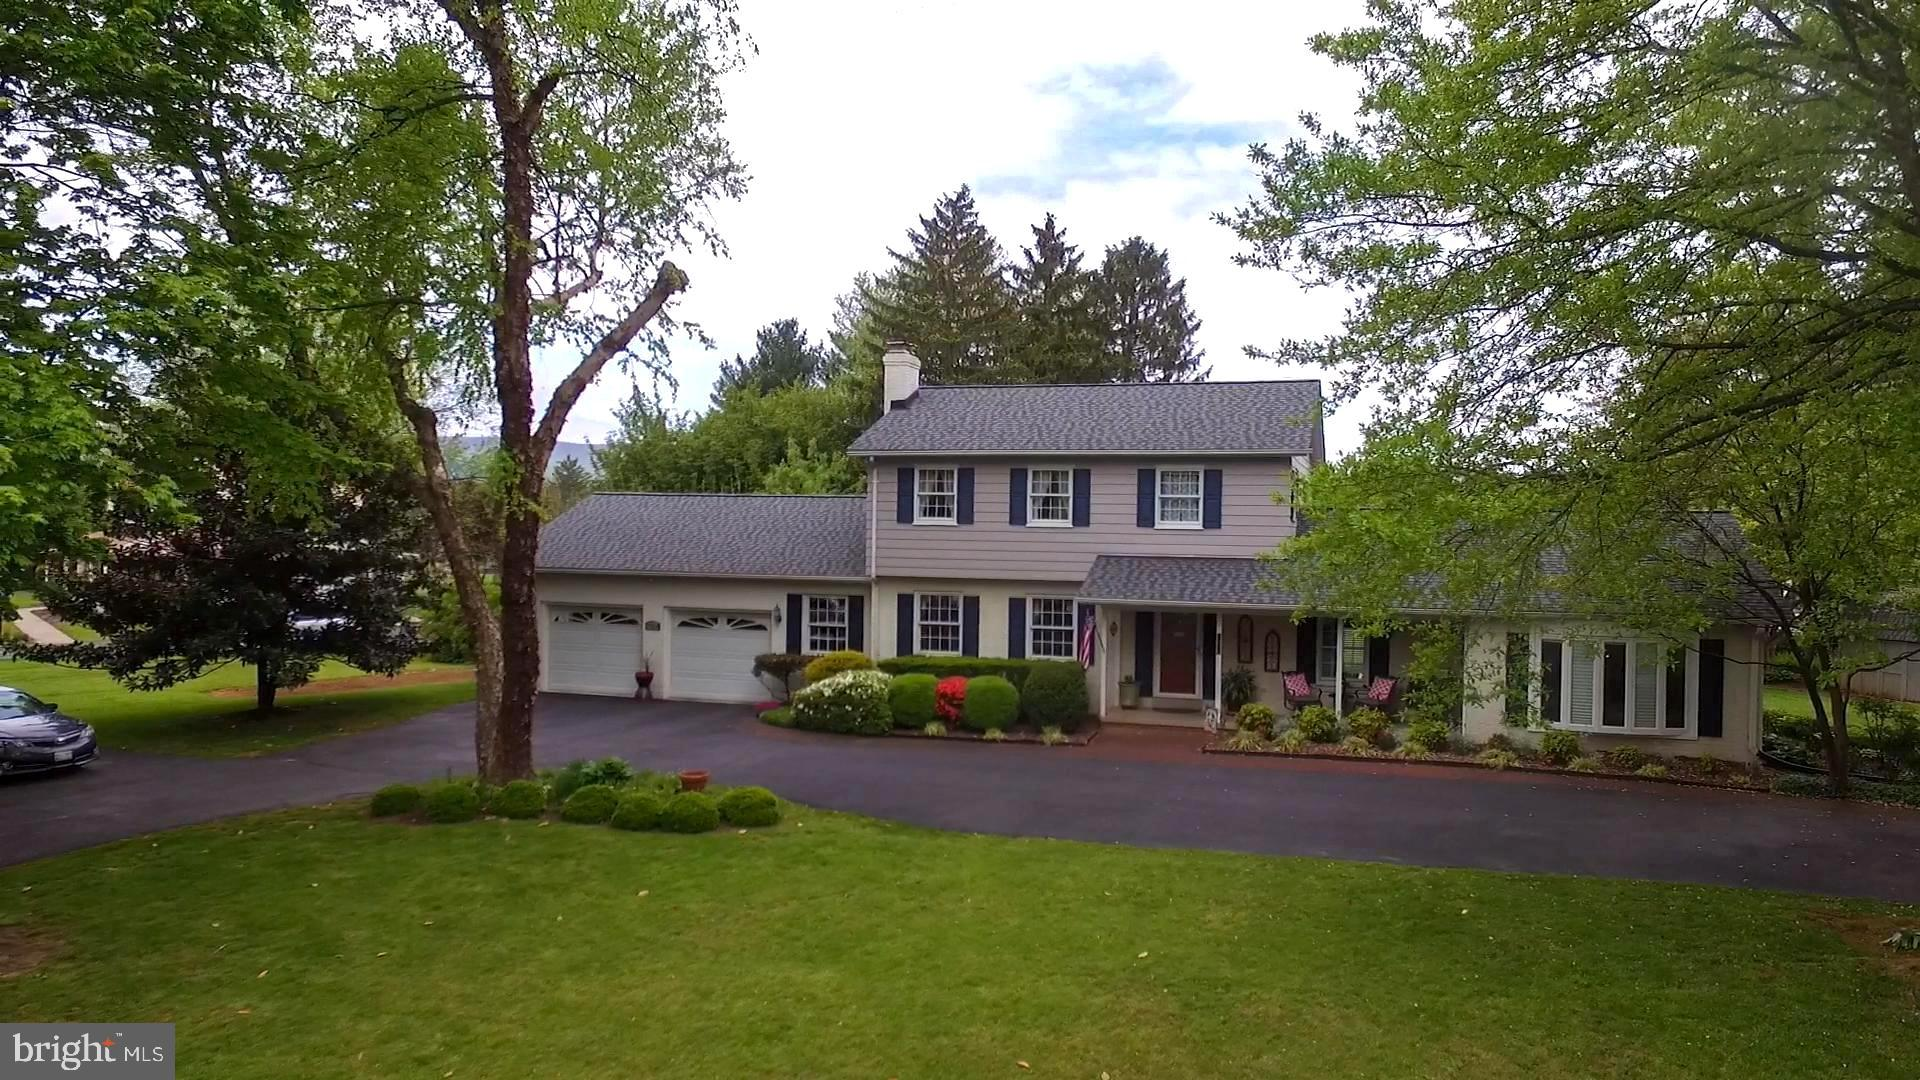 Sought after Clover Hill corner lot with circular drive! These don't come around often. This large A